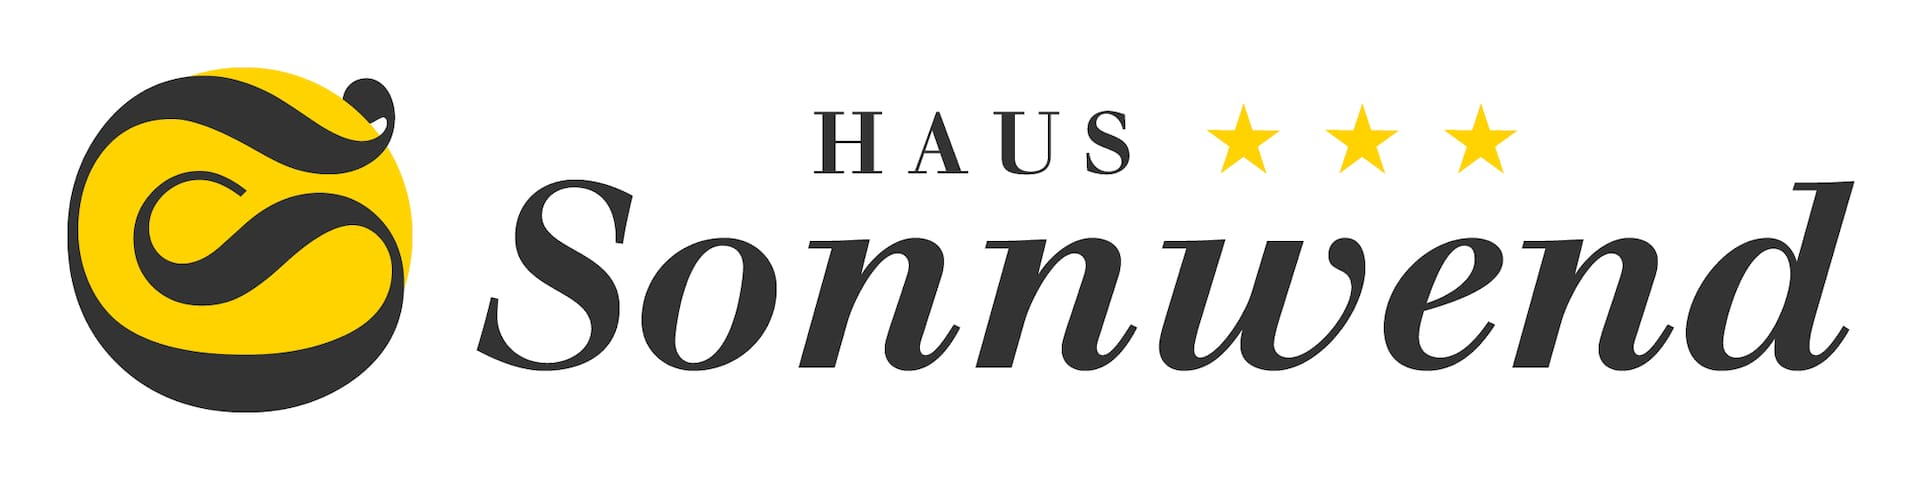 Haus Sonnwend - Alpbach - Bed & Breakfast